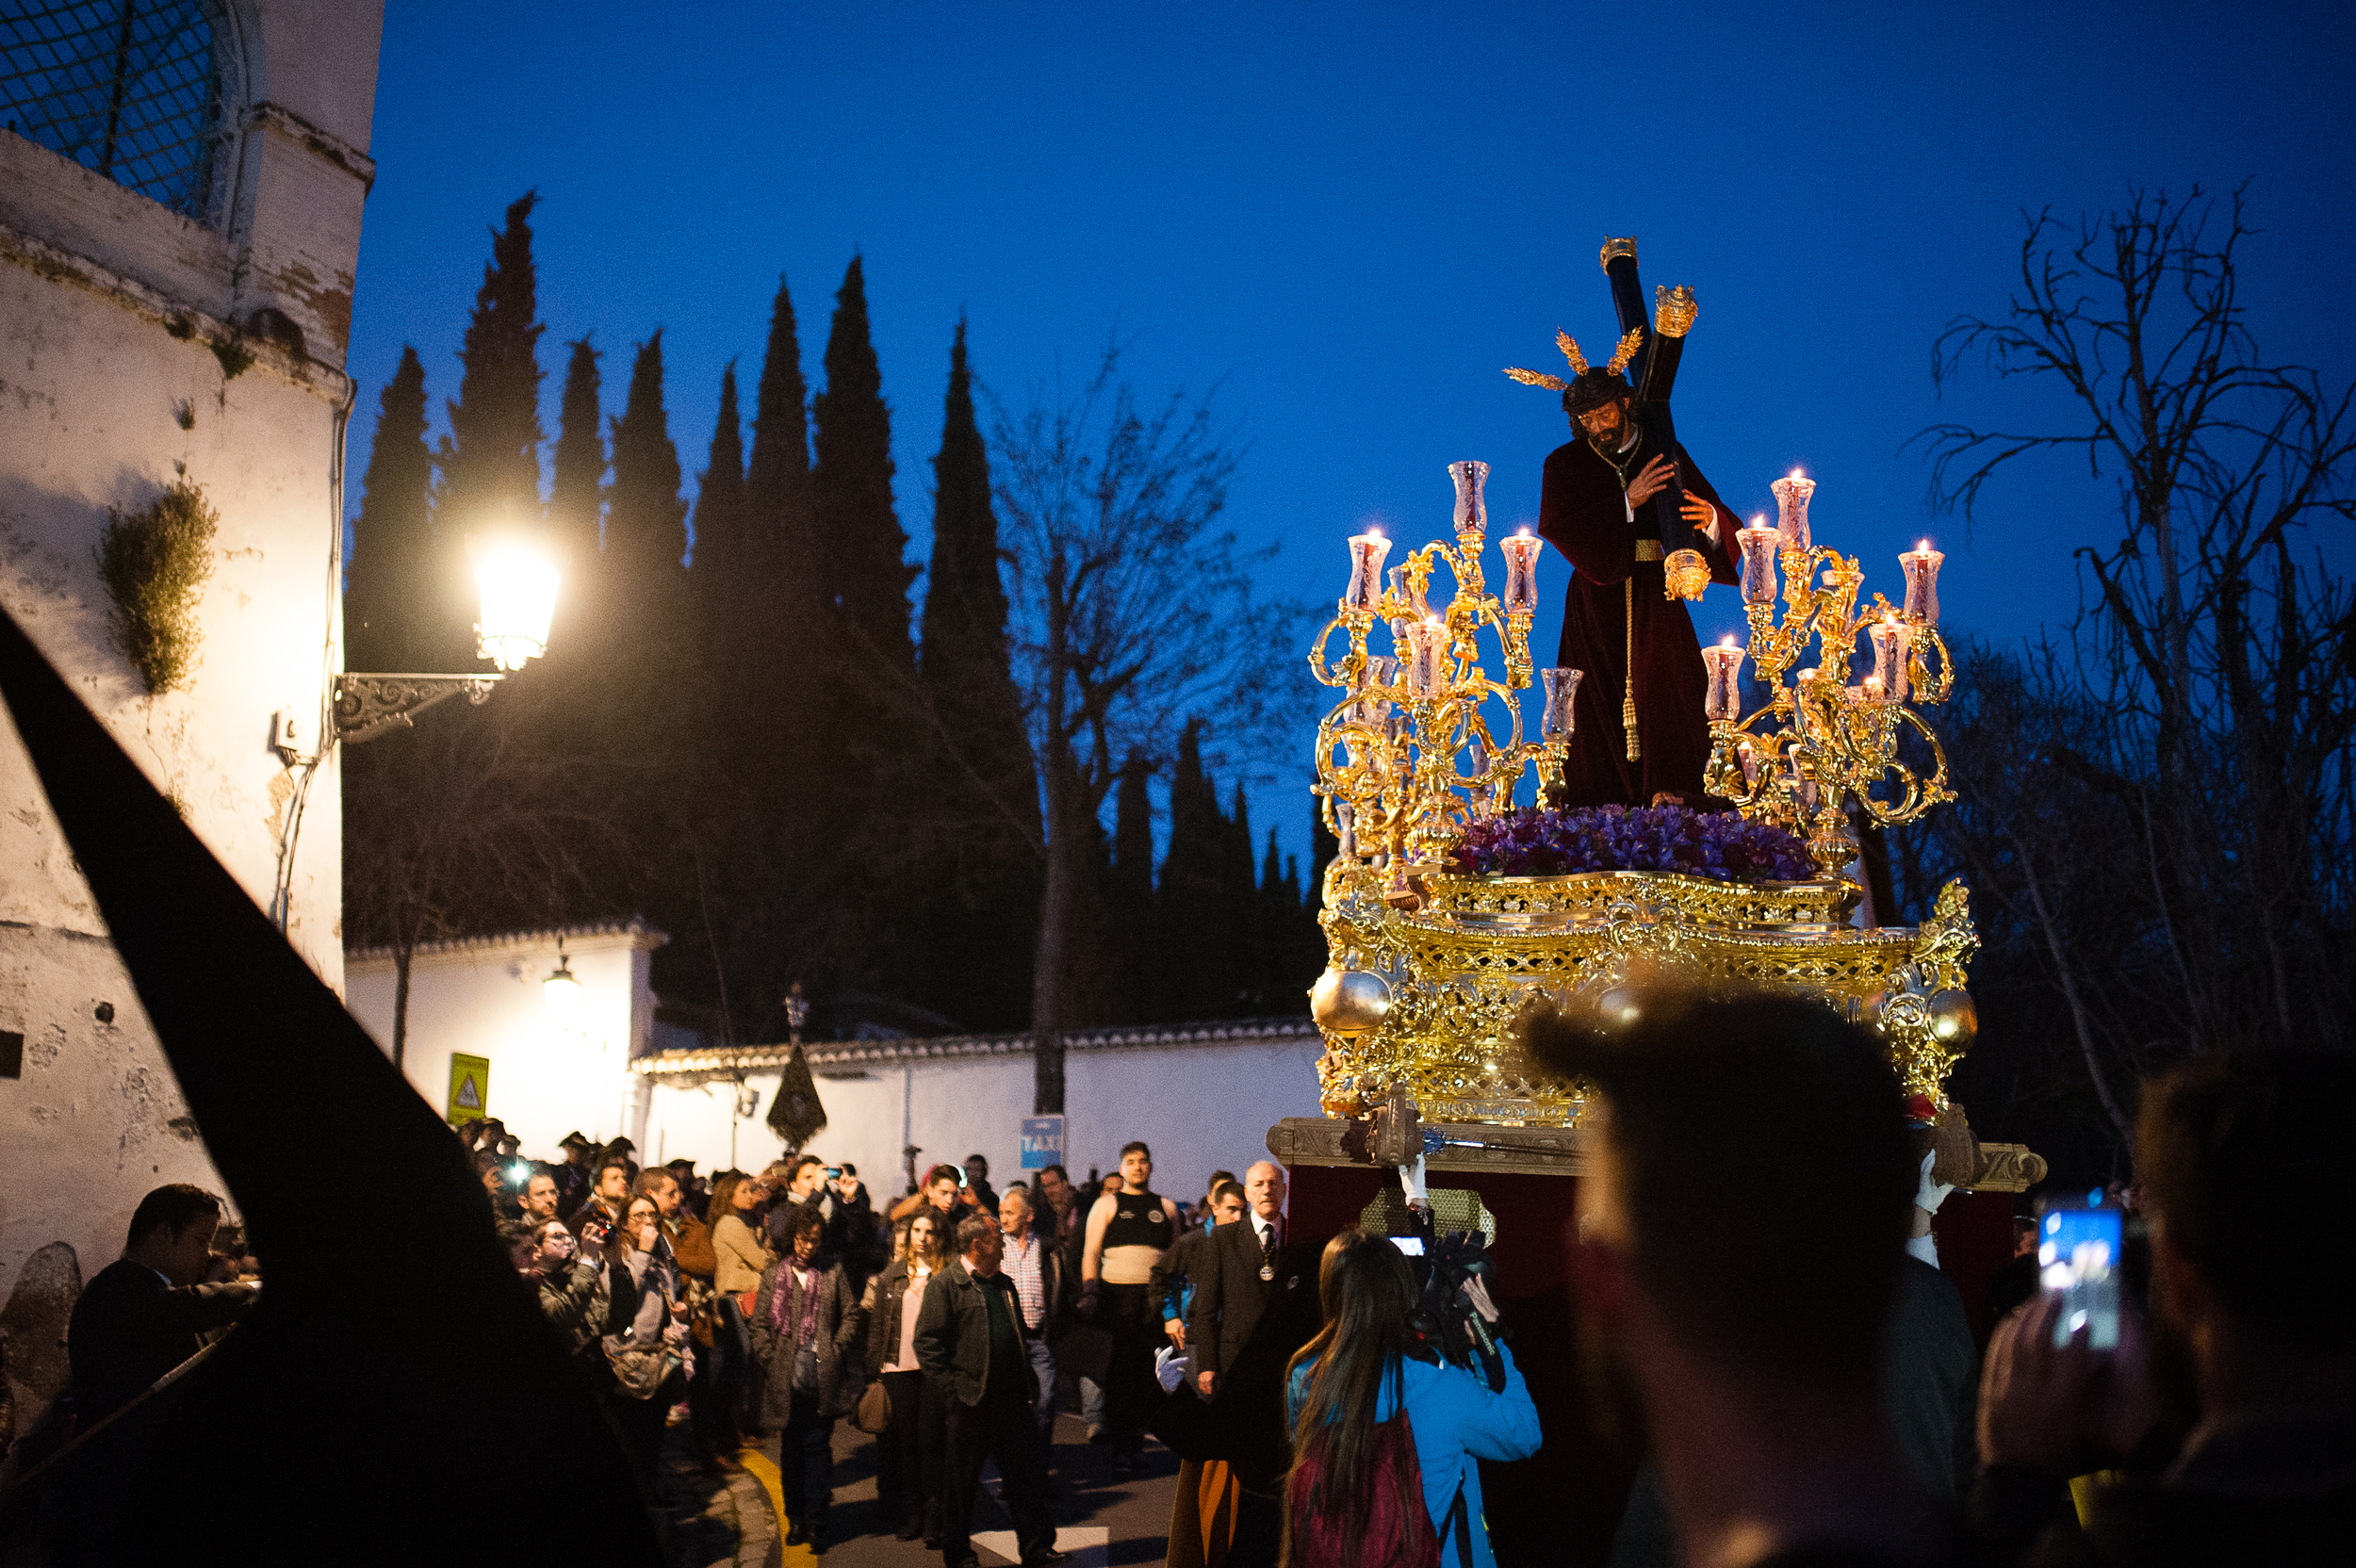 Gorgeous  pasos of Christ carrying the cross. Each float is a different stage in the passion and originates at different cathedrals, churches, or brotherhoods throughout the city.